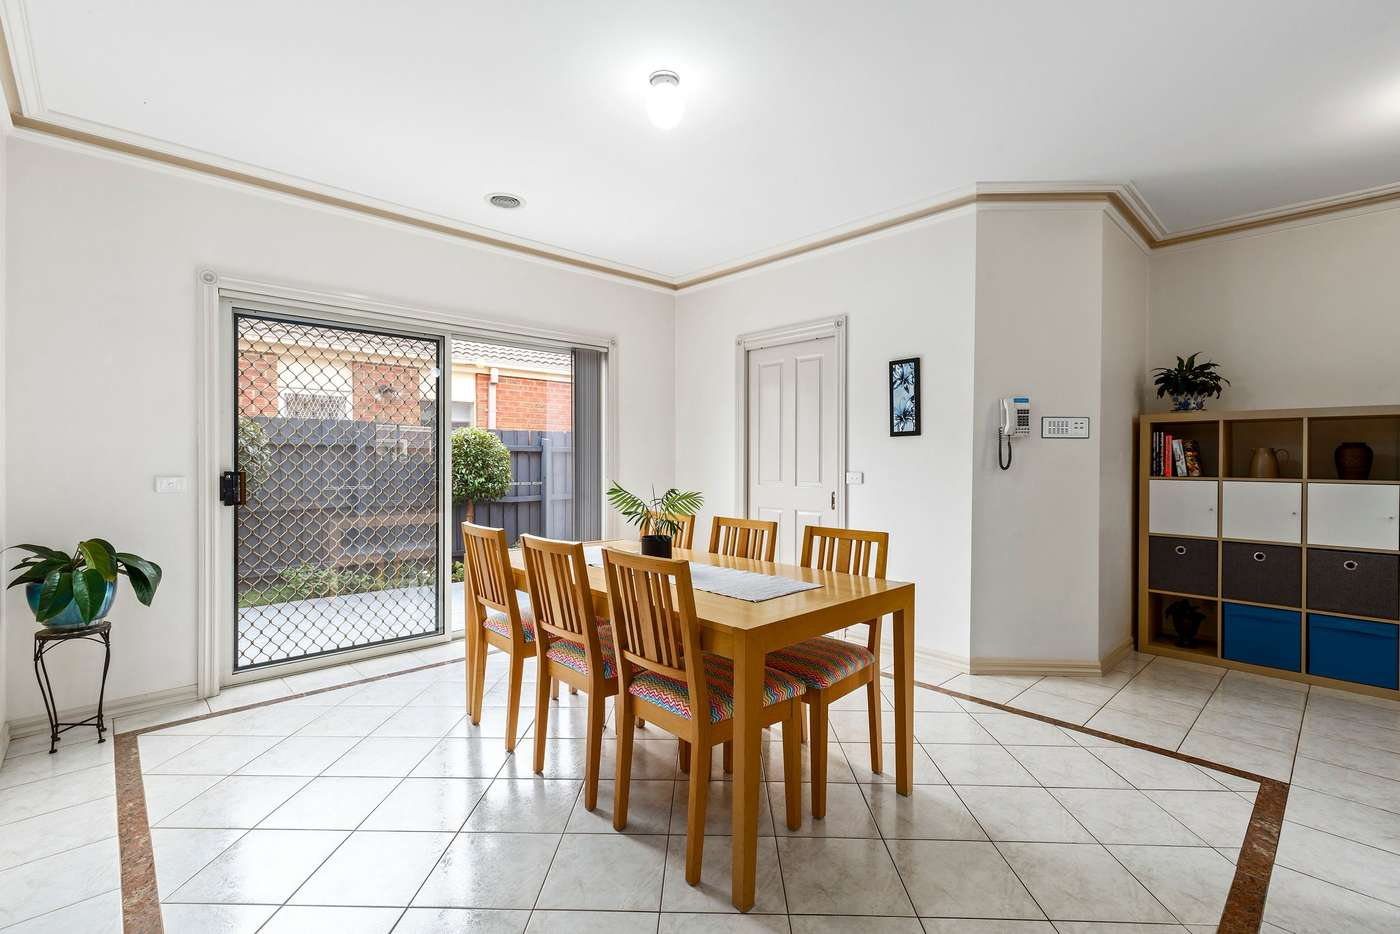 Fifth view of Homely townhouse listing, 5/53-55 Teague Street, Niddrie VIC 3042